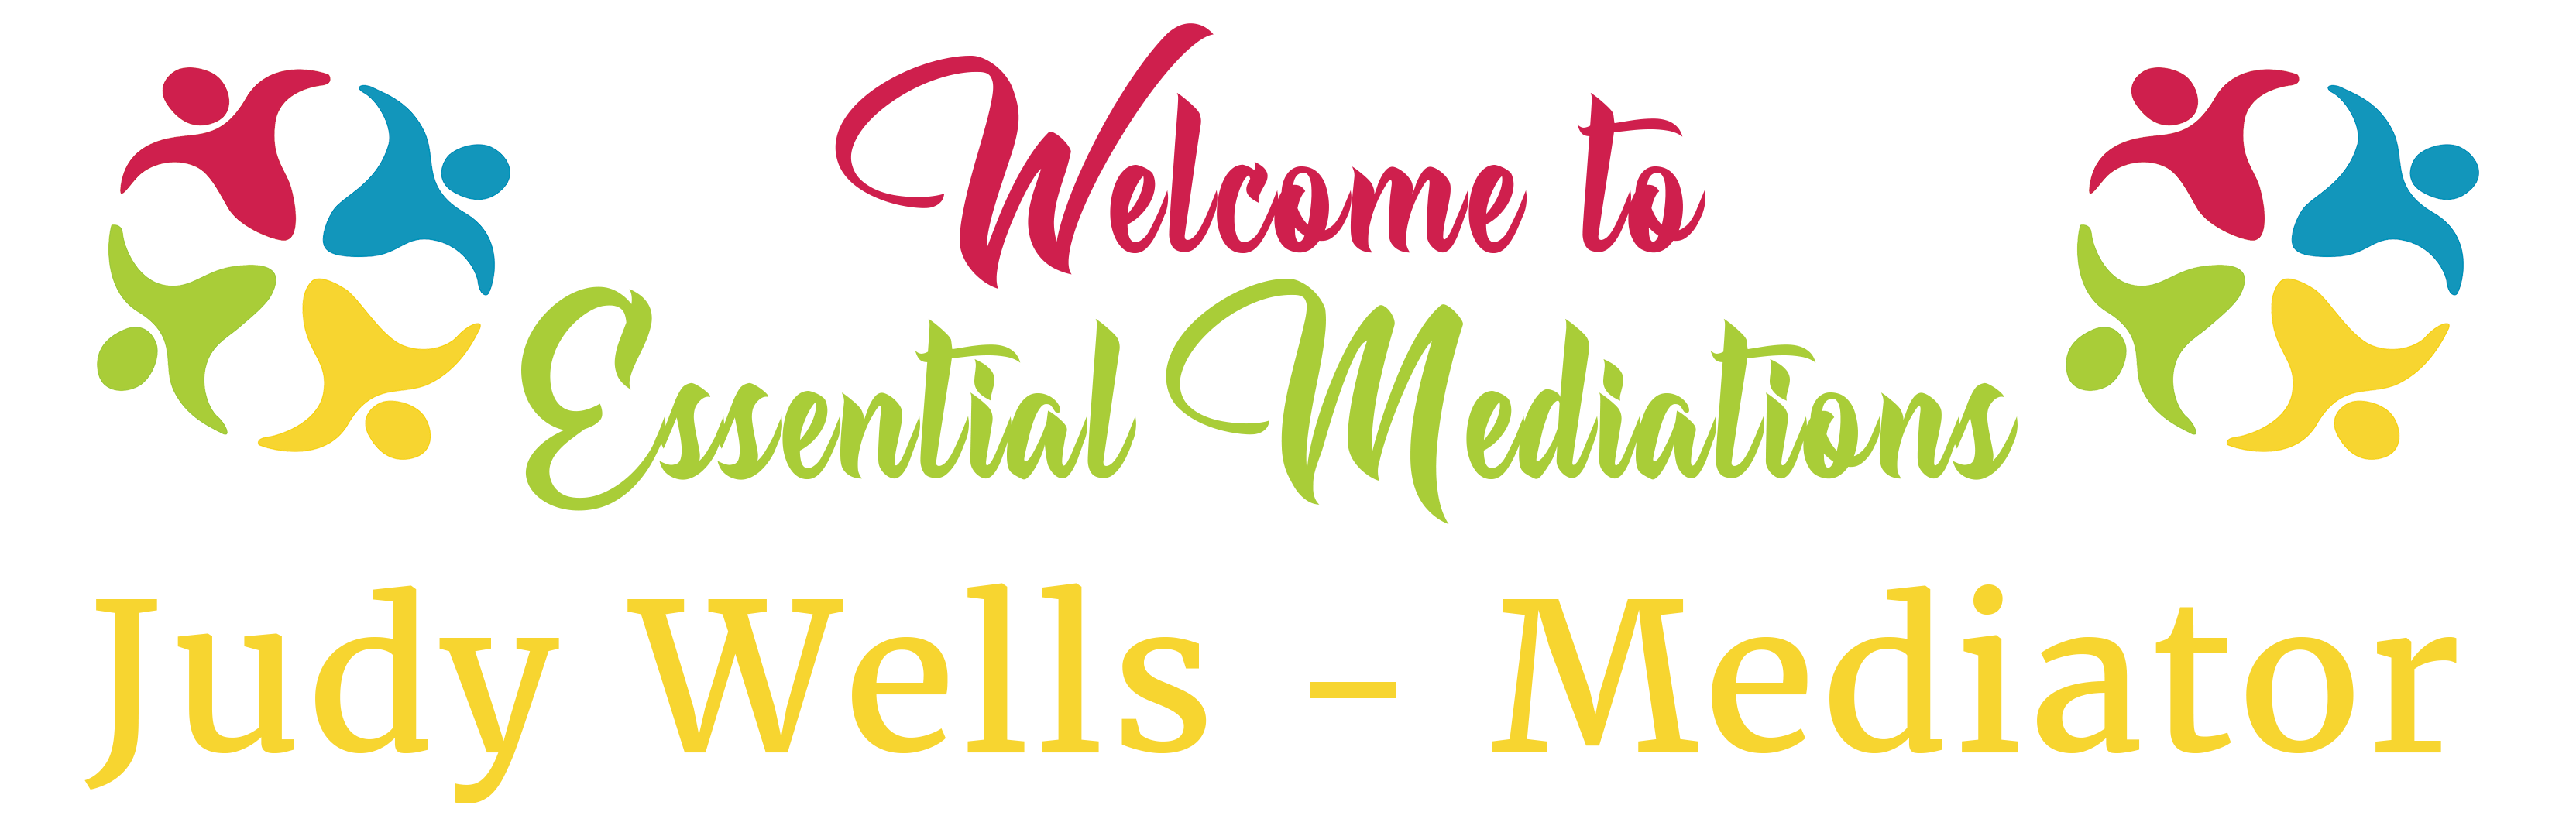 Essential Mediations – Judy Wells – Mediator